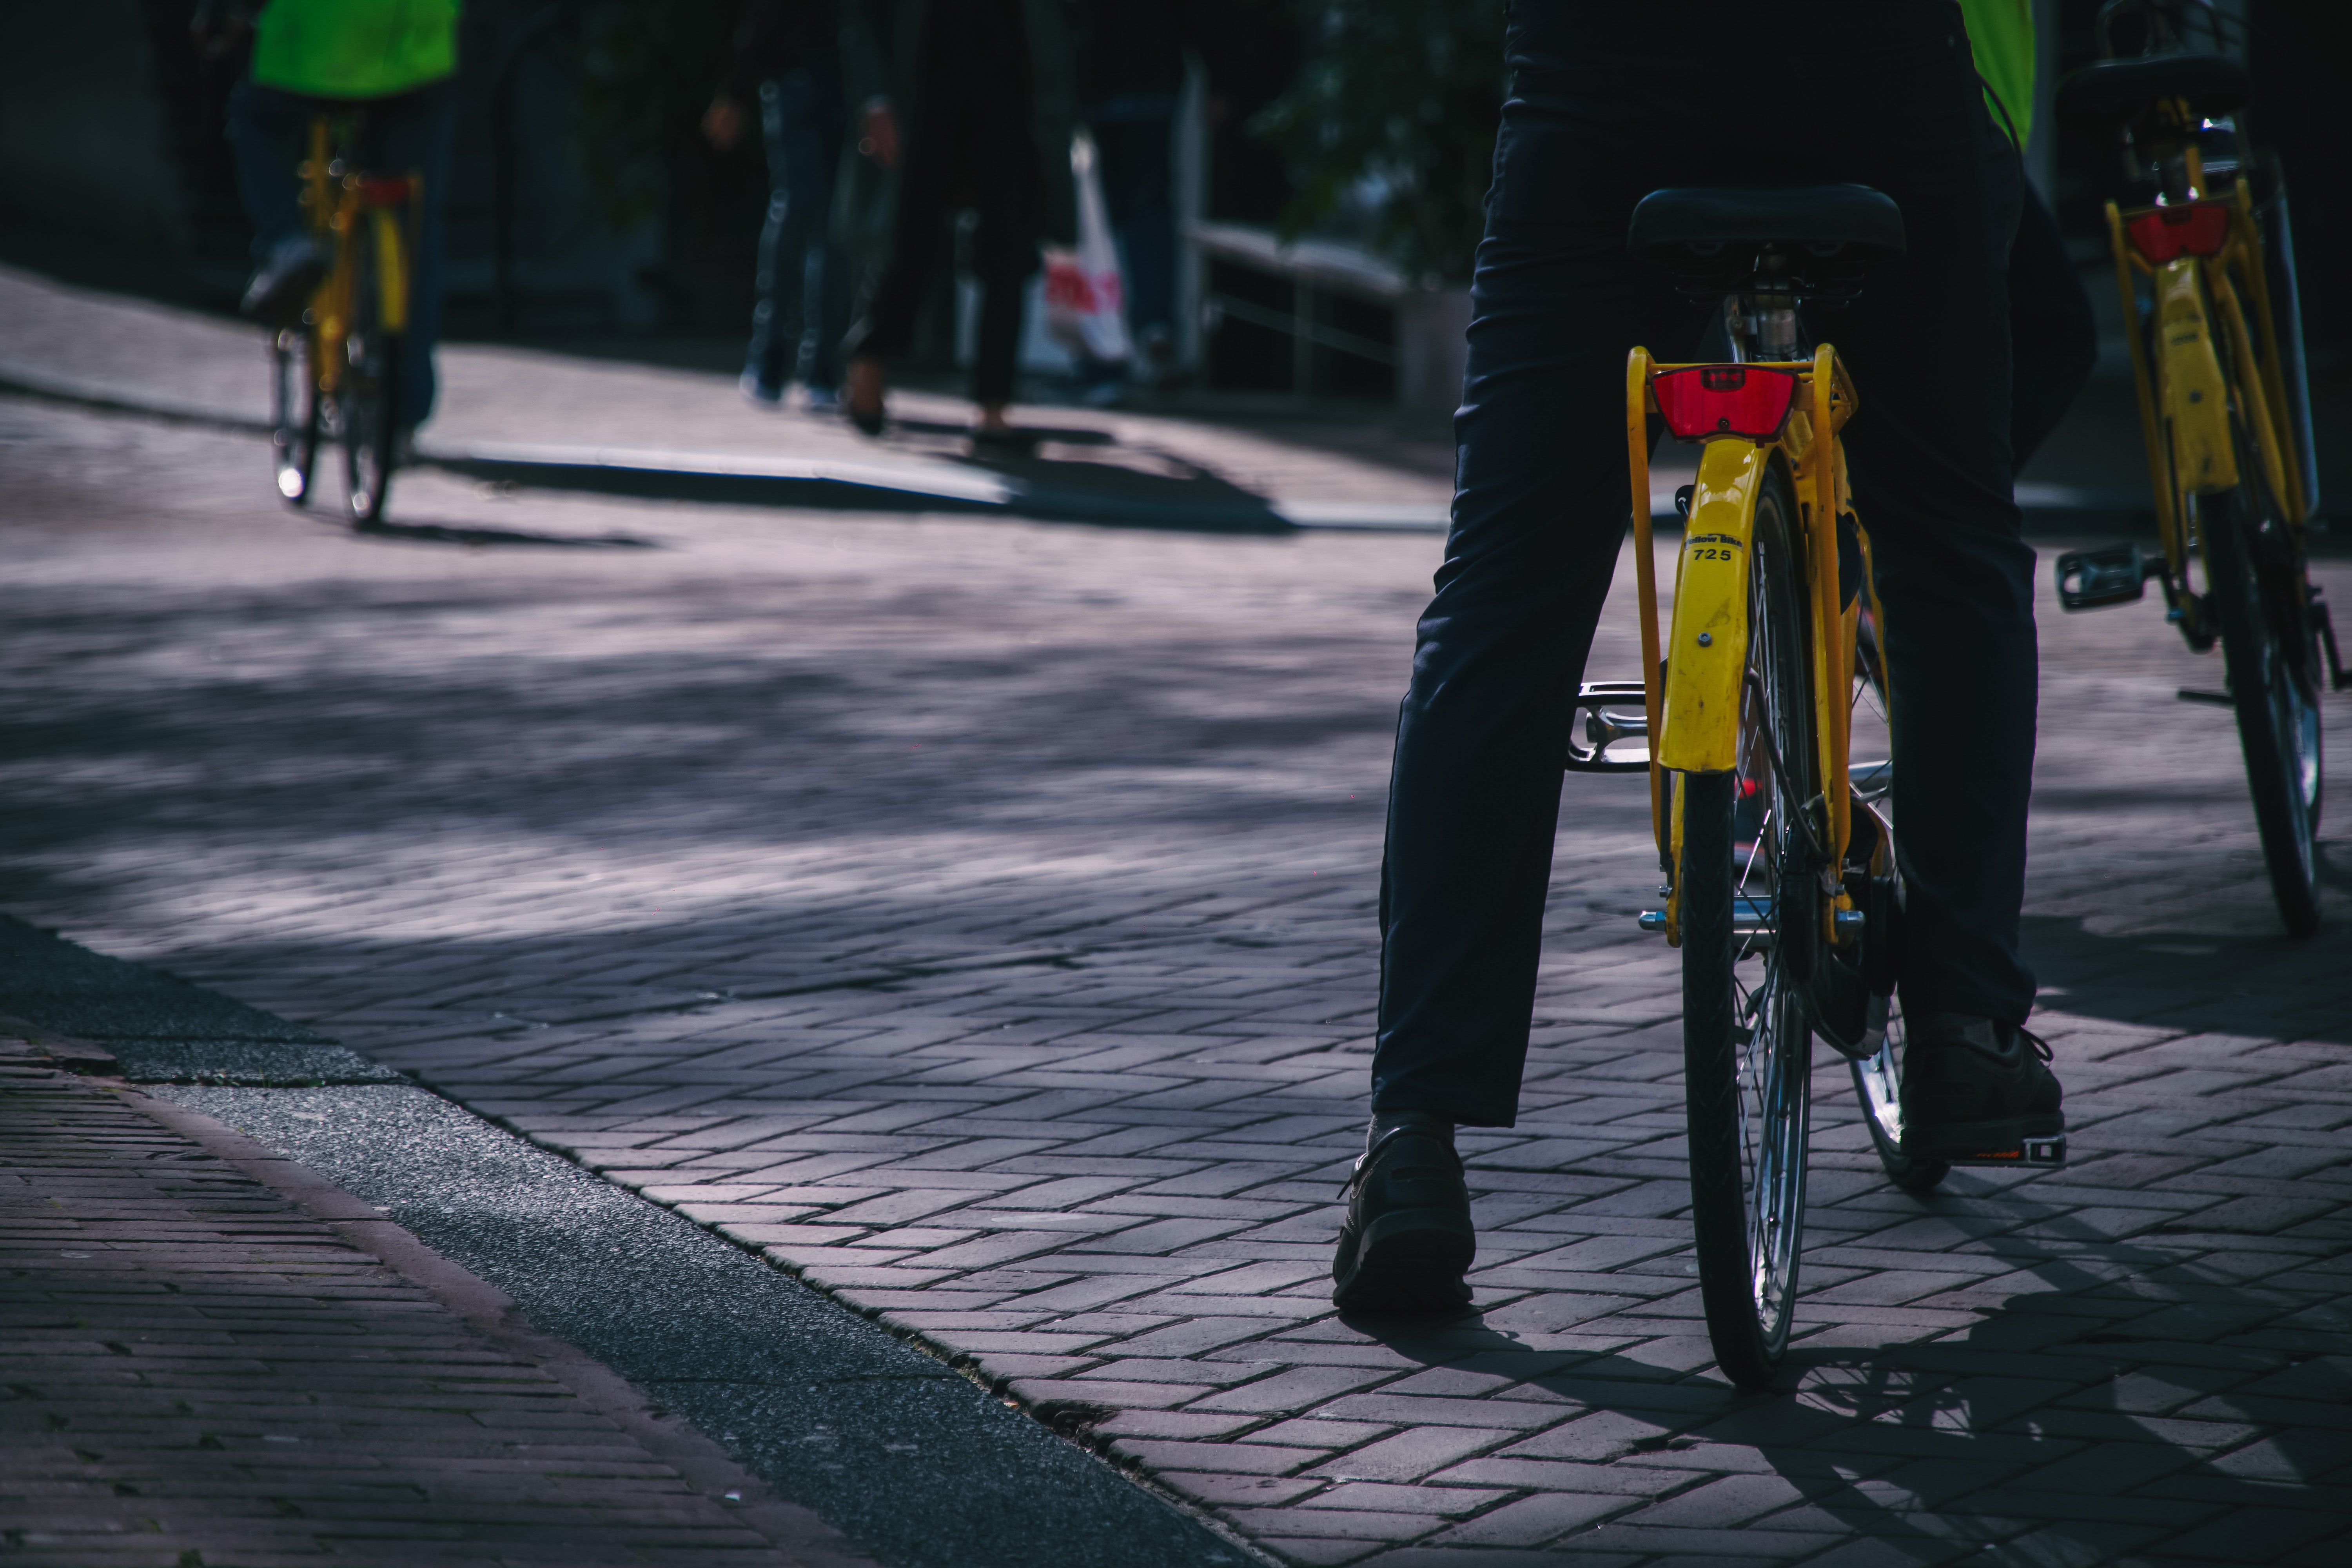 person riding on yellow bicycle during daytime